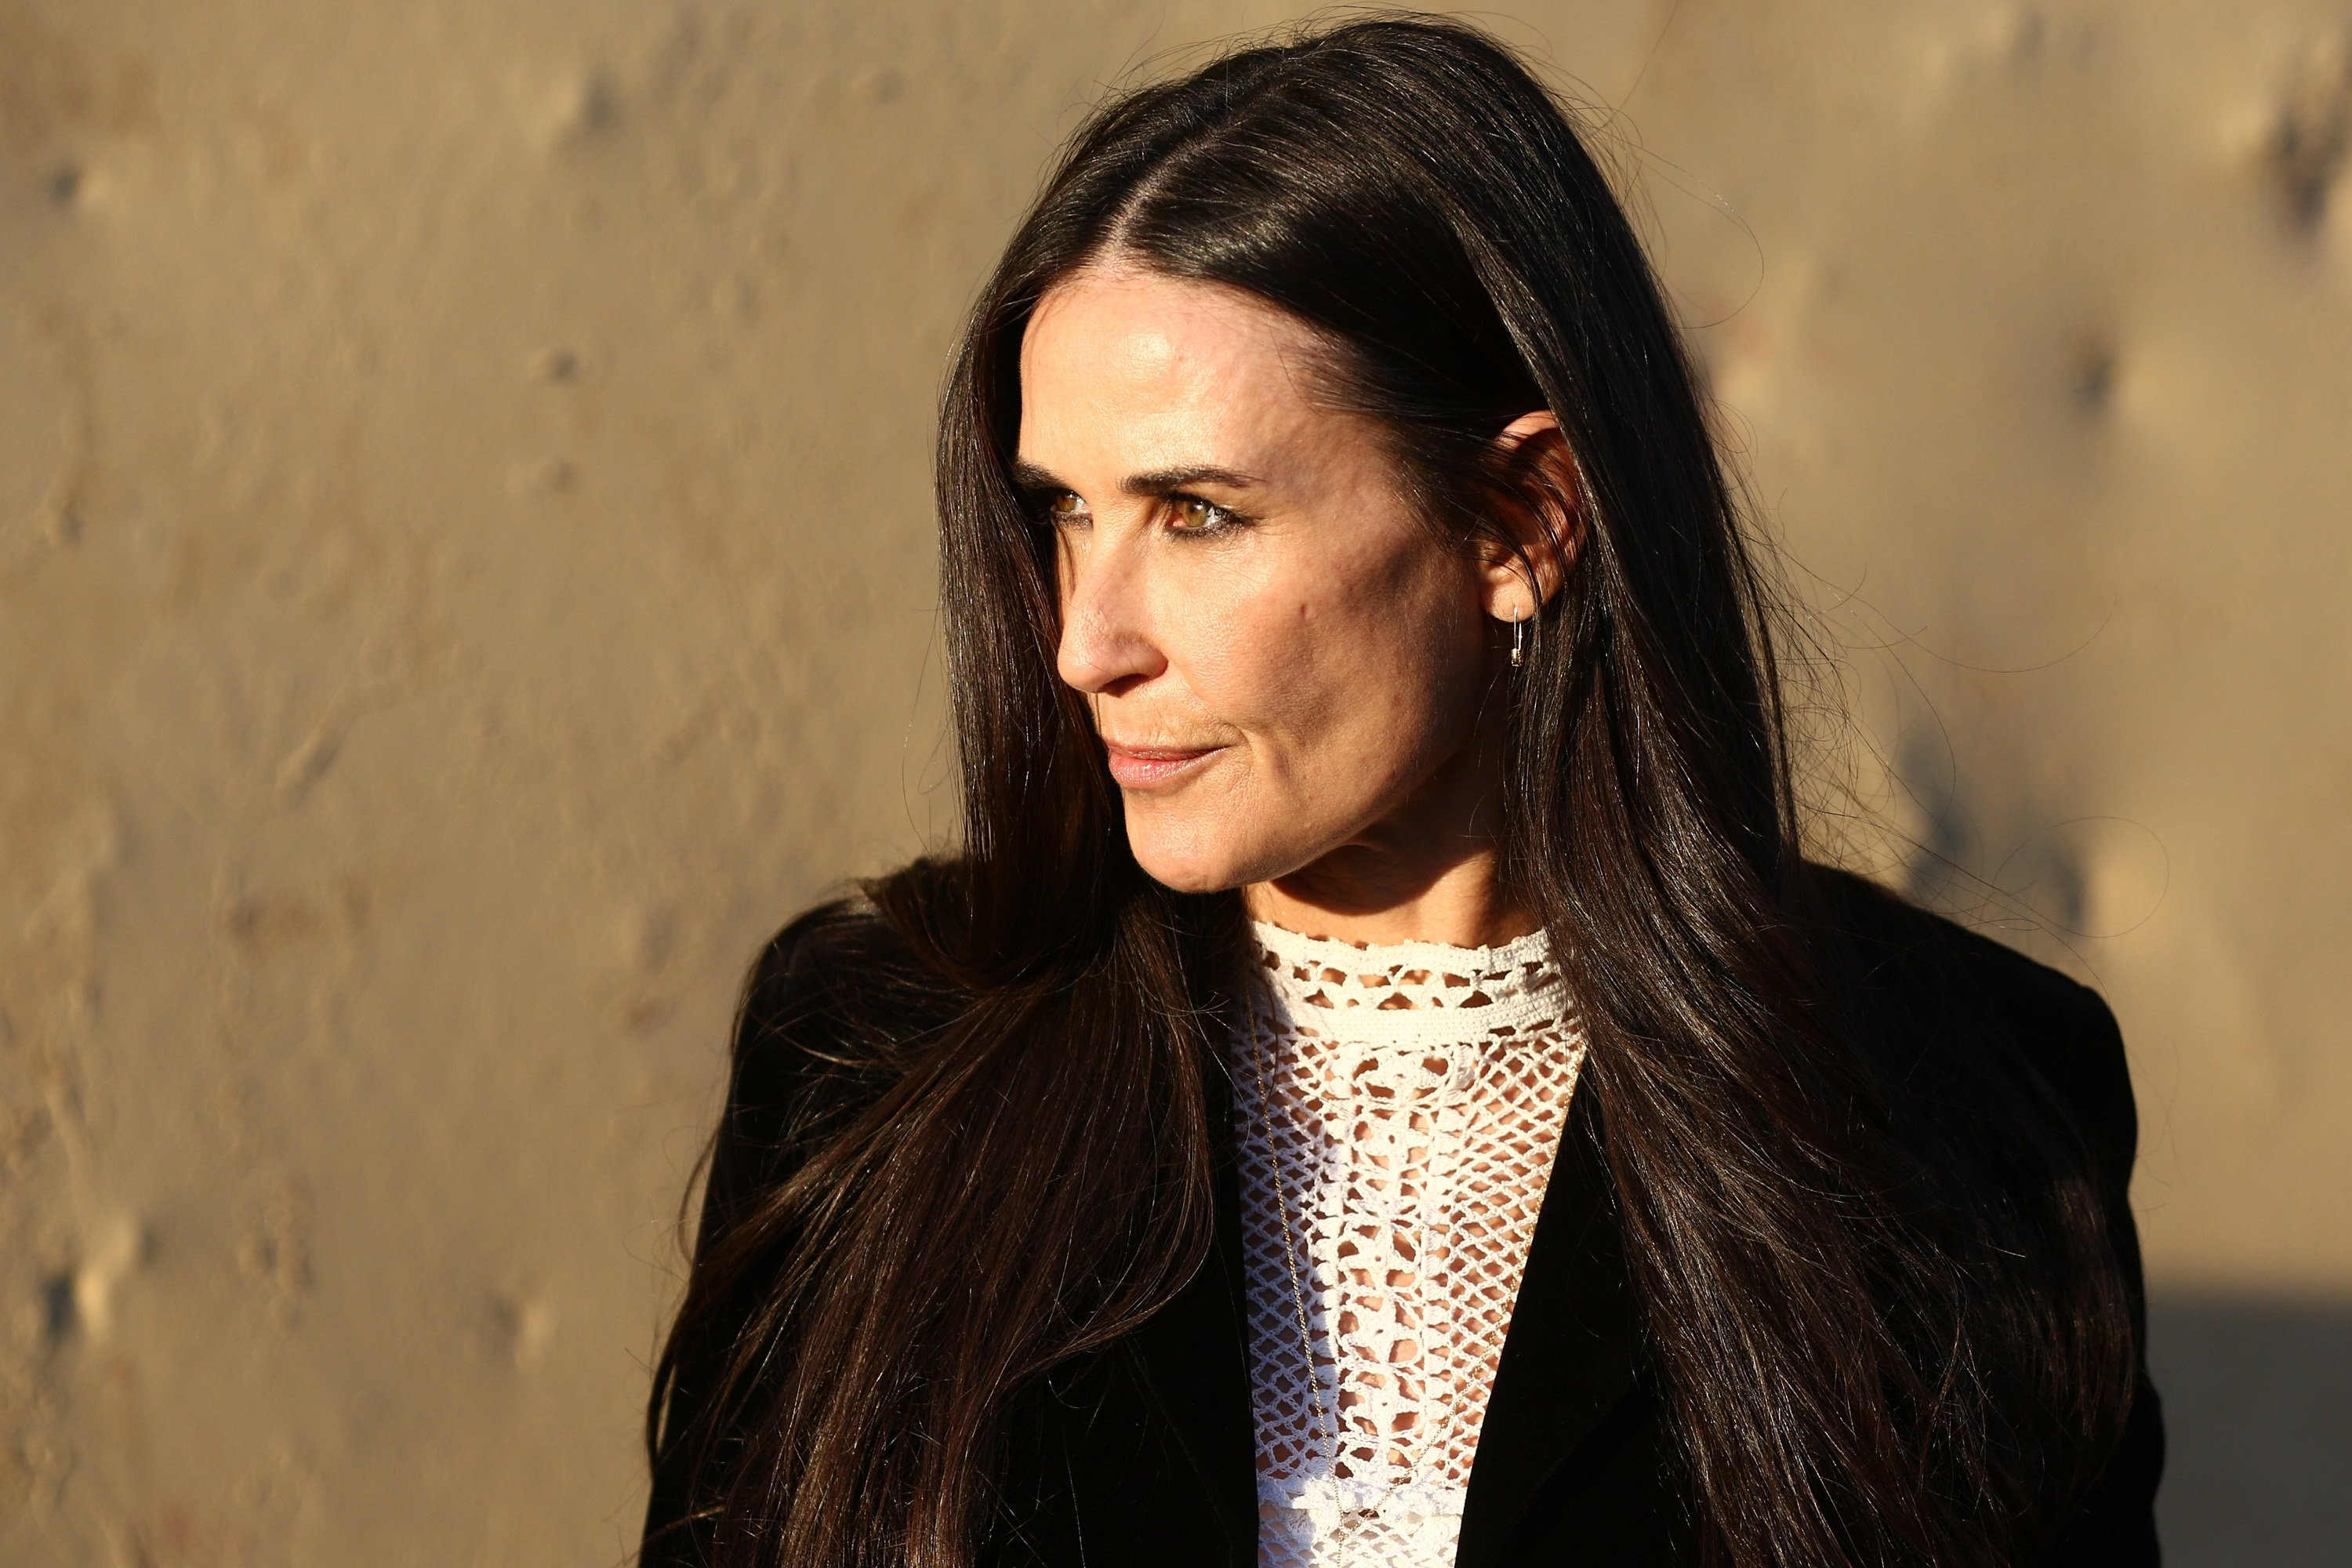 Actor Demi Moore attends the Christian Dior Cruise 2018 Runway Show. | Source: Getty Images